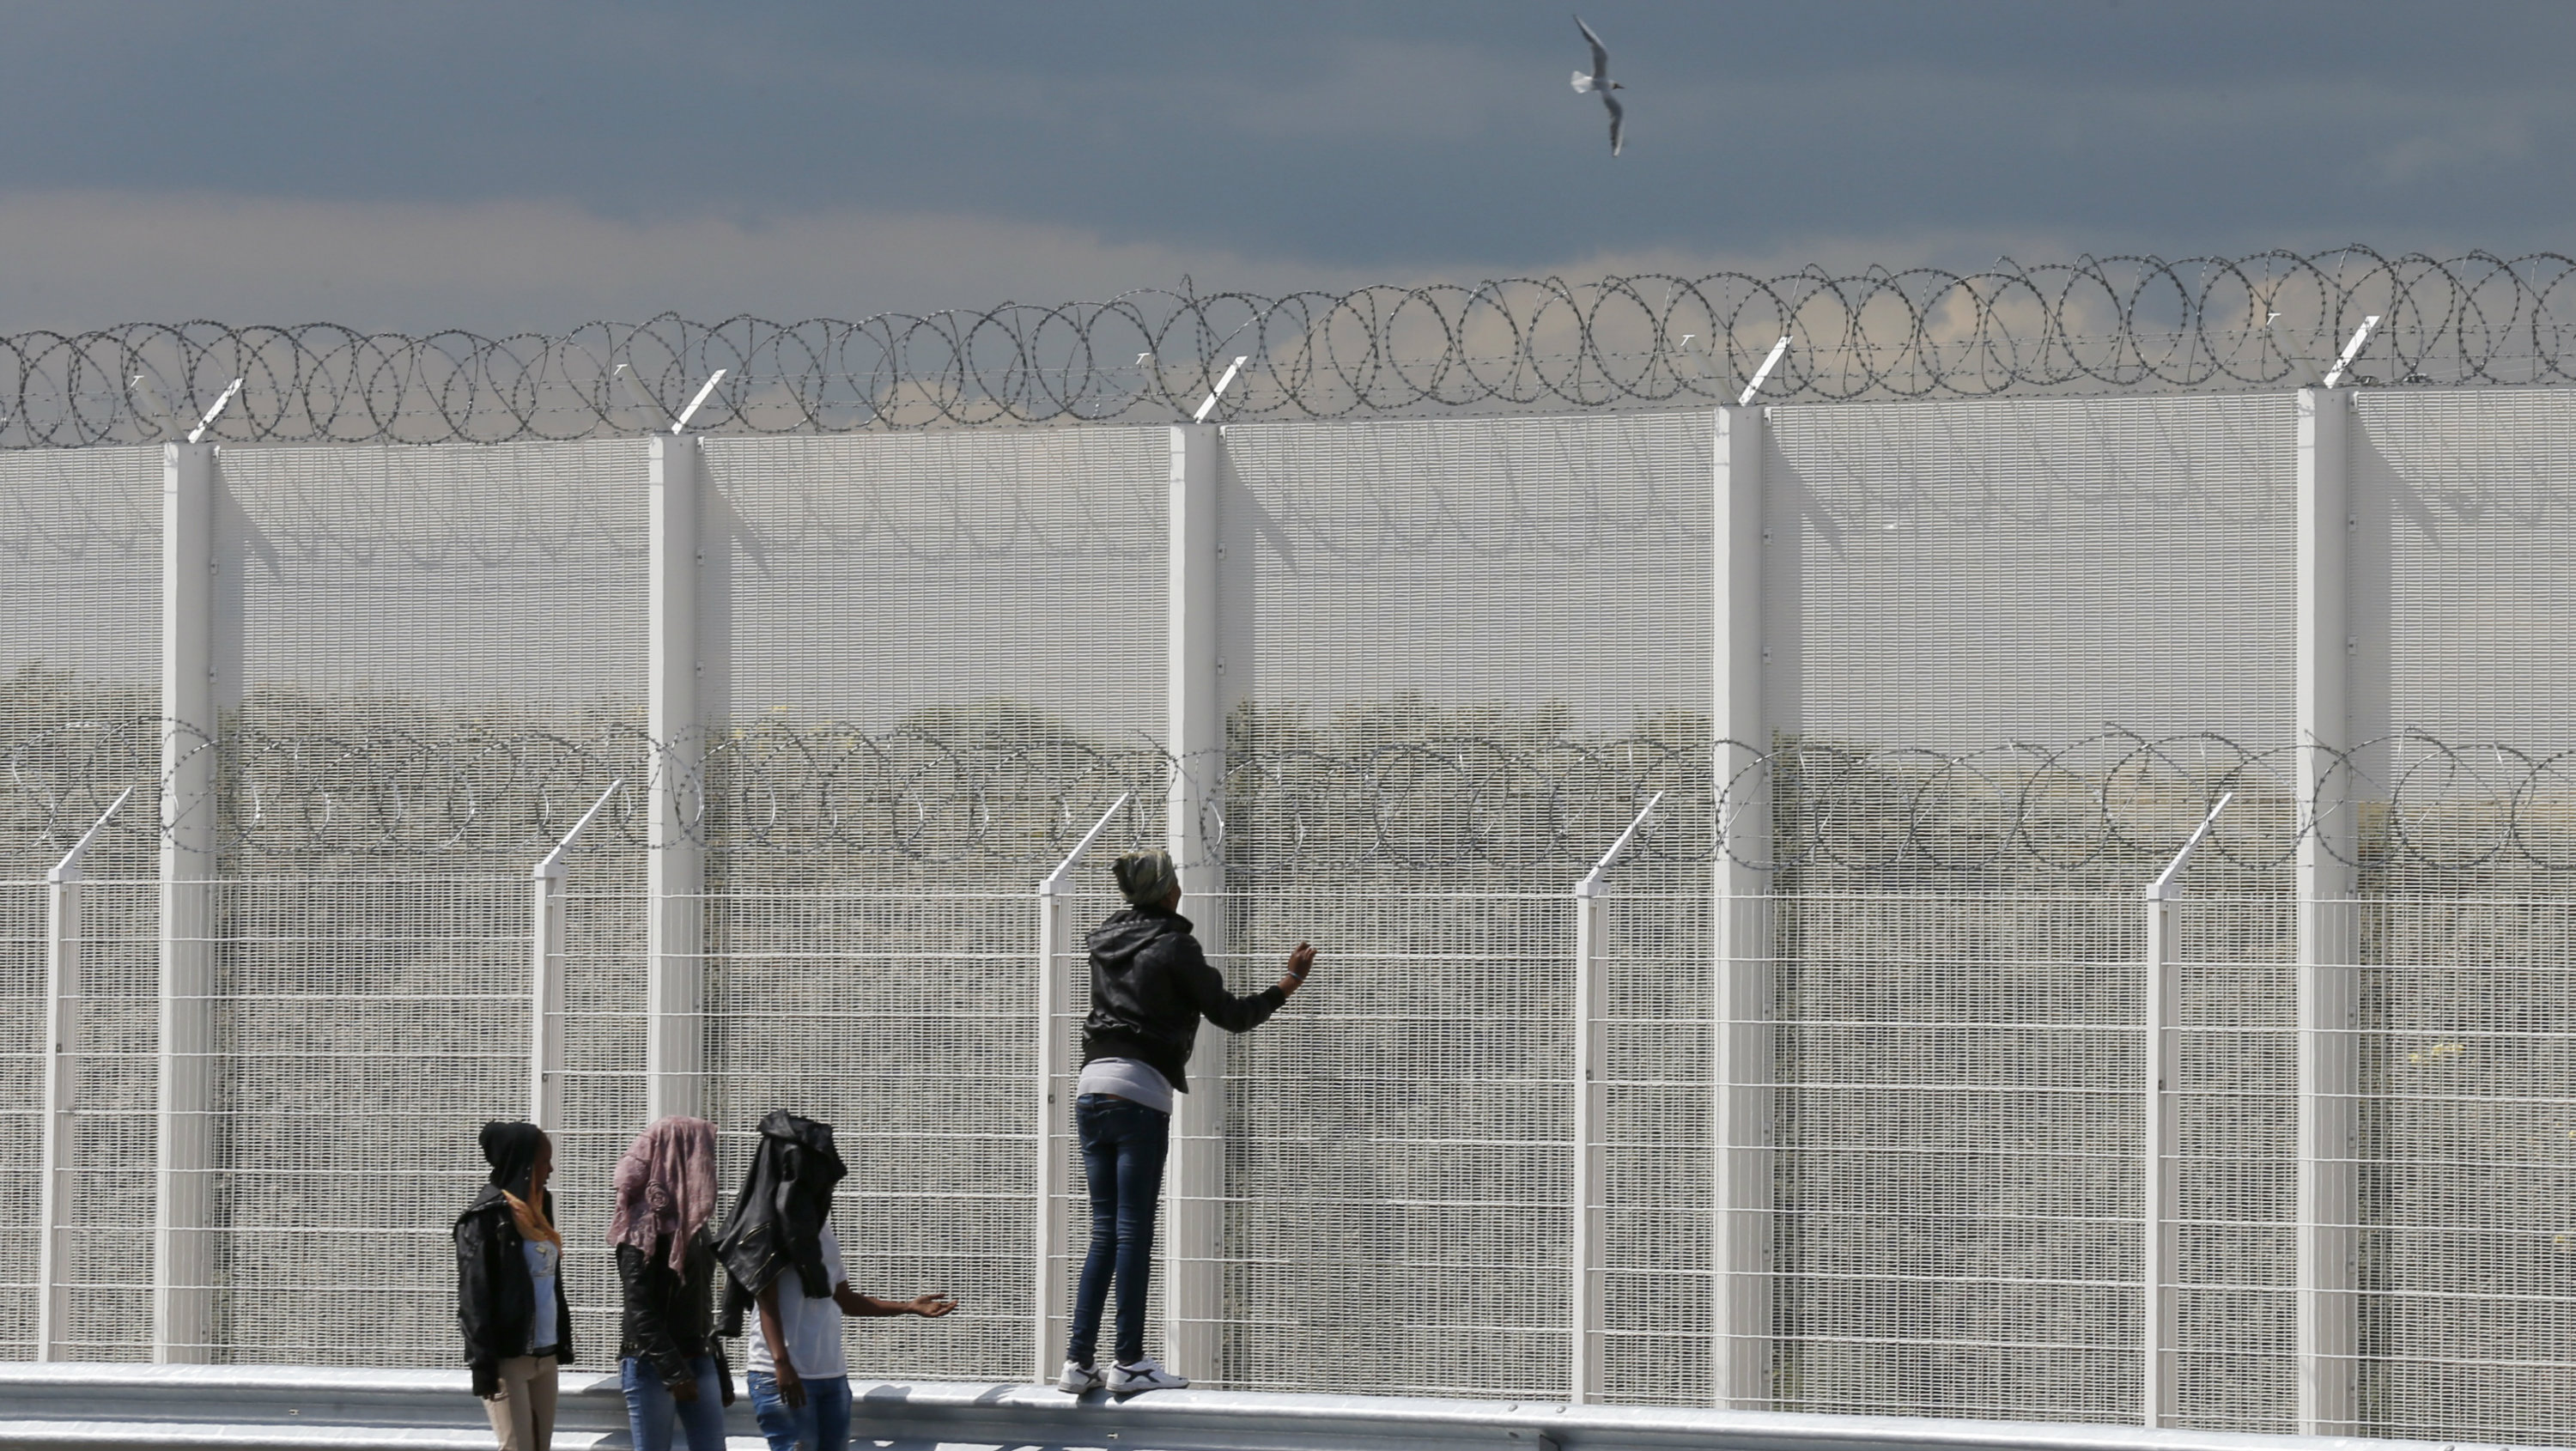 Migrants walk past the barbed wire fence on the main access route to the Ferry harbour Terminal in Calais, northern France, July 30, 2015